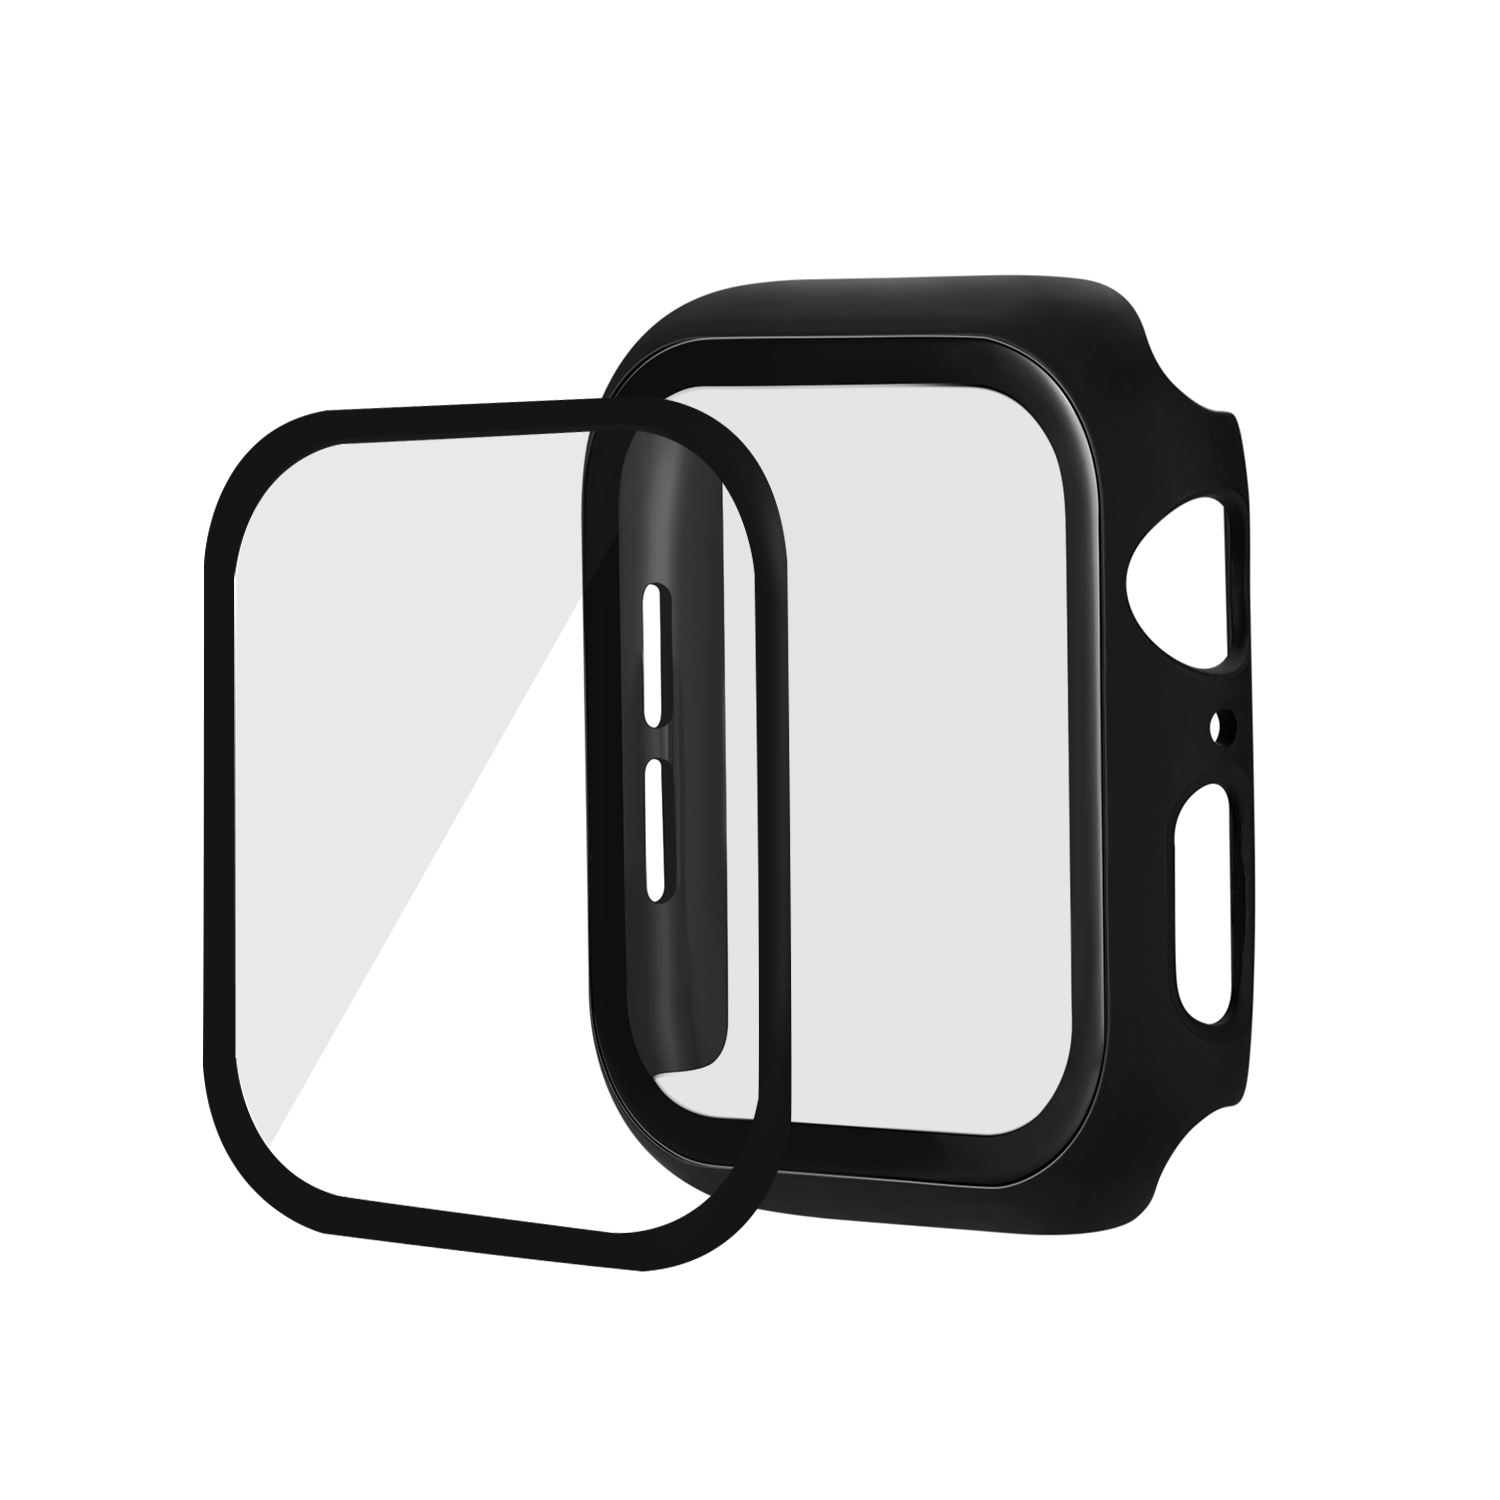 Tempered Glass Film Full Cover For Apple Watch Case Series 2 3 4 5 Bumper Screen Protector For iWatch 44mm 42mm 40mm 38mm Case image